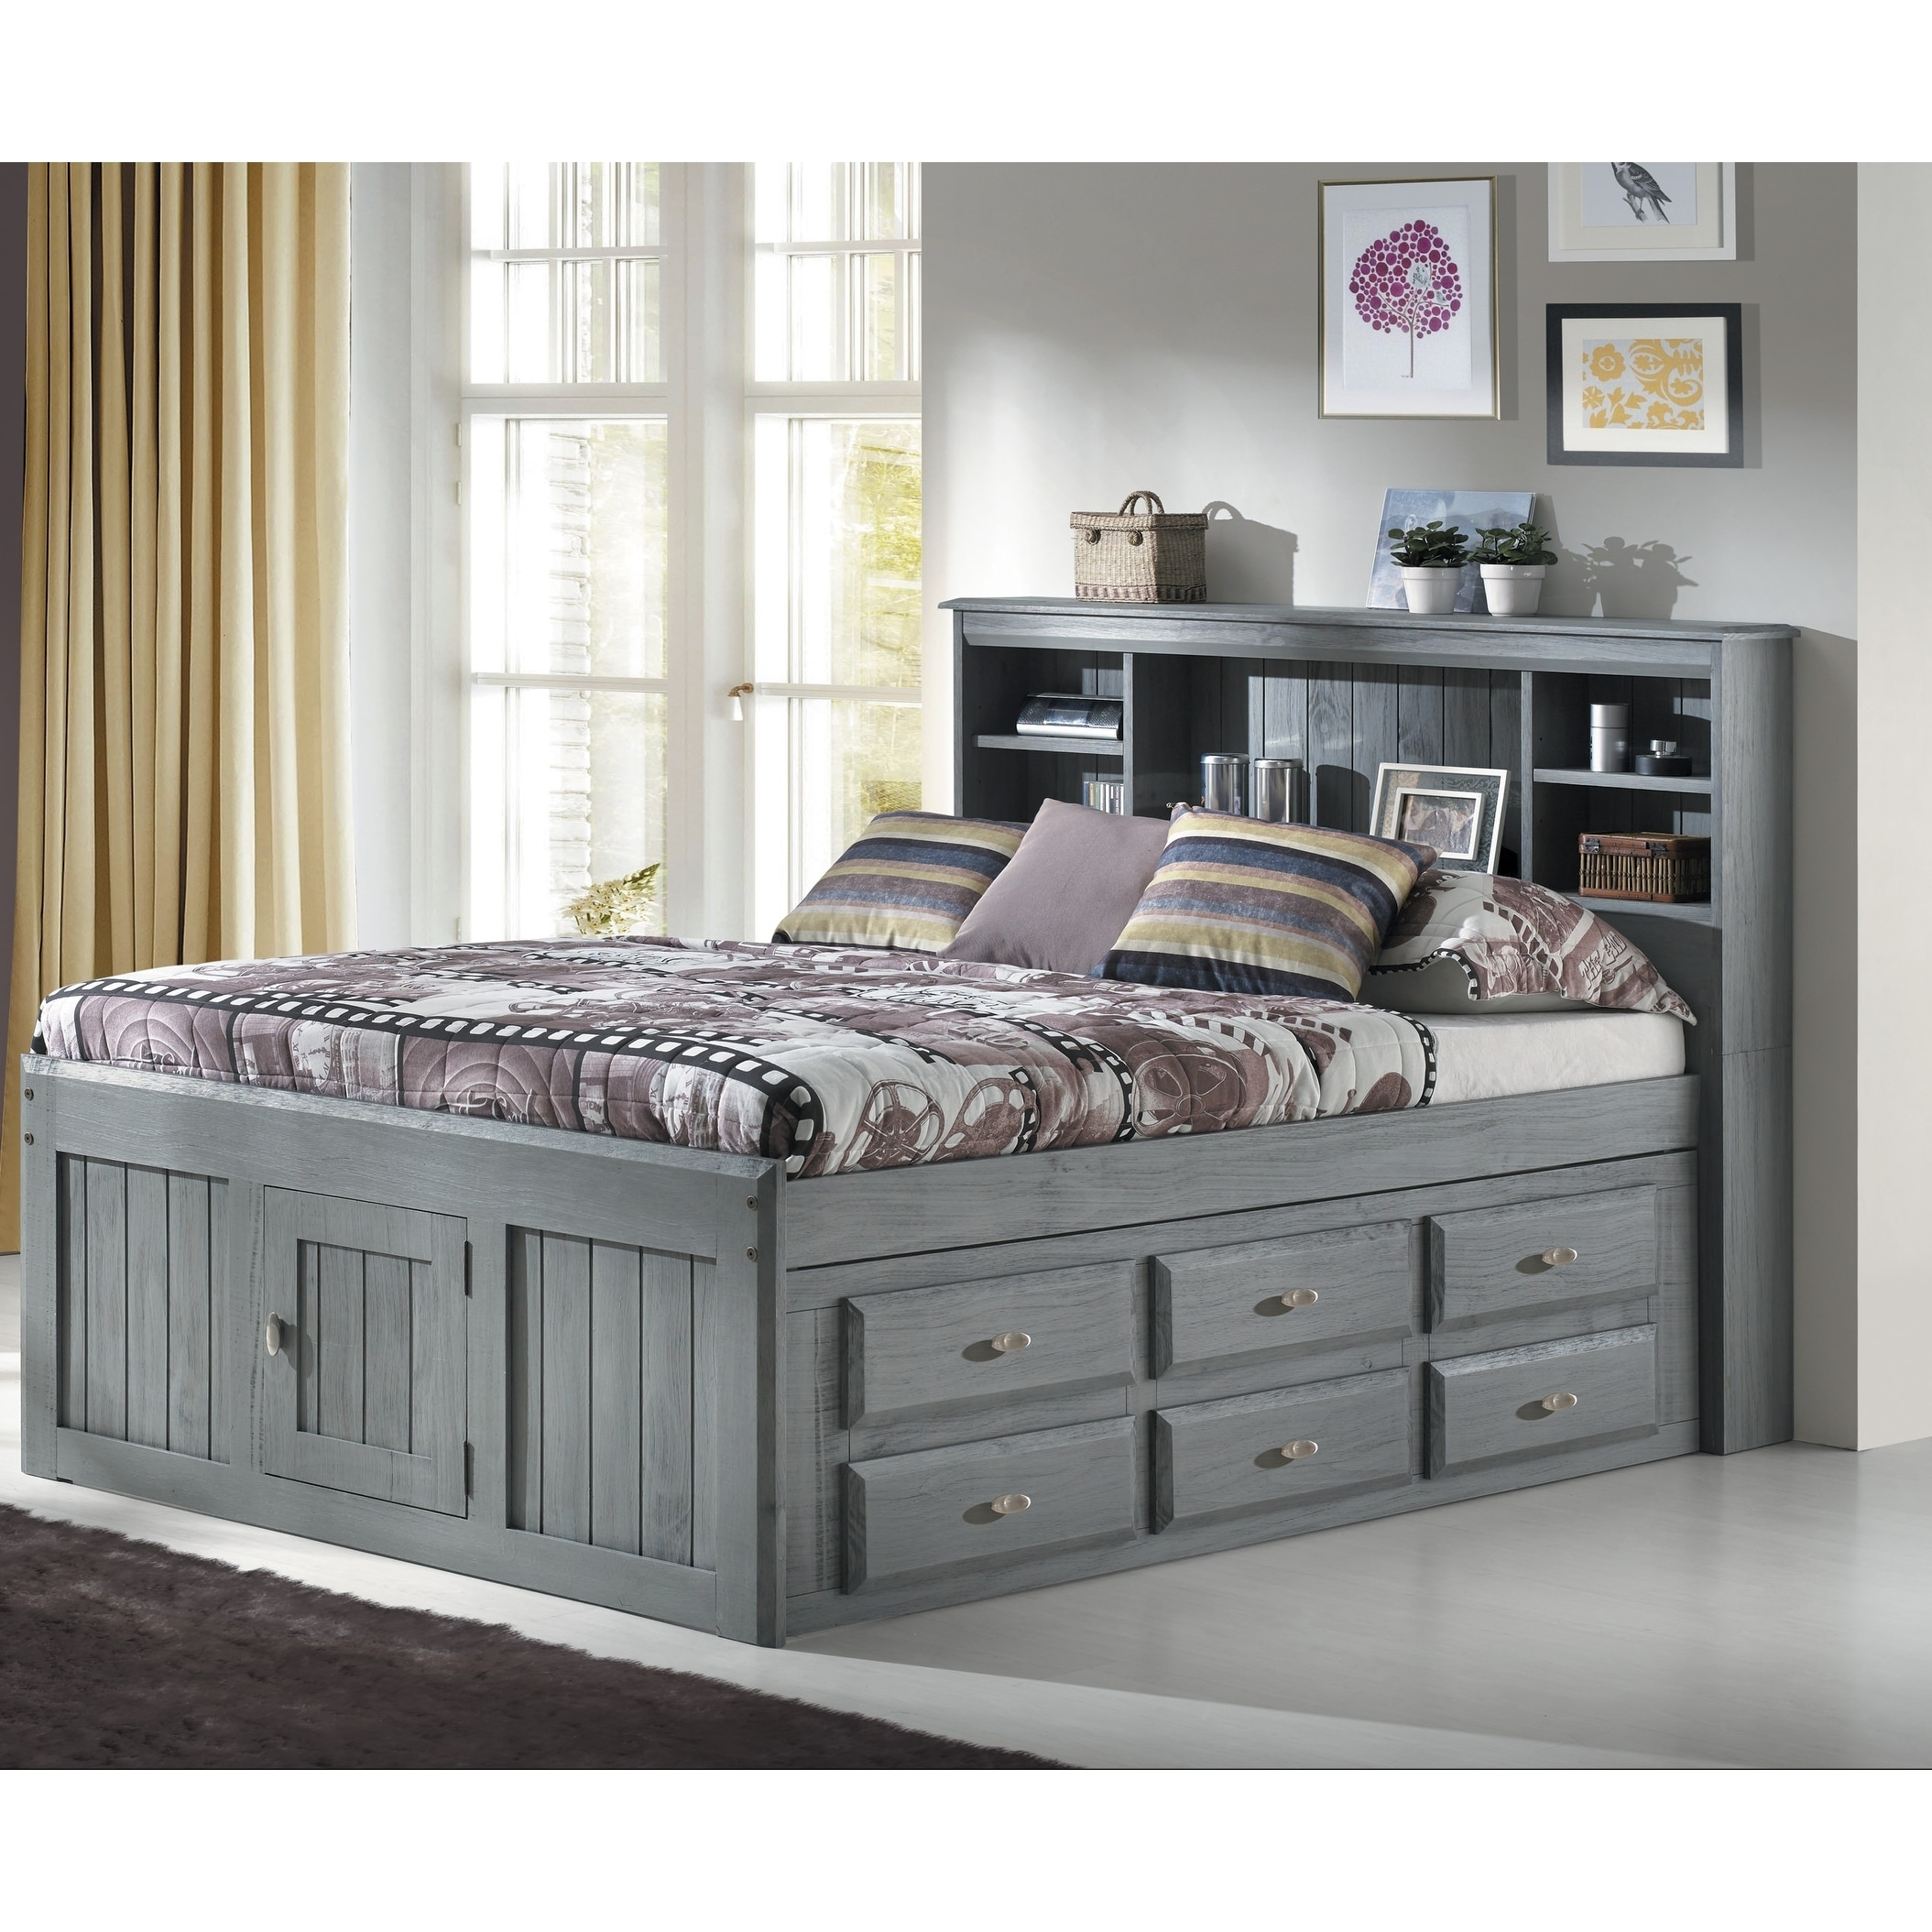 Shop Black Friday Deals On Charcoal Finish Solid Pine Full Captains Bookcase Bed With 12 Drawers Overstock 23620489